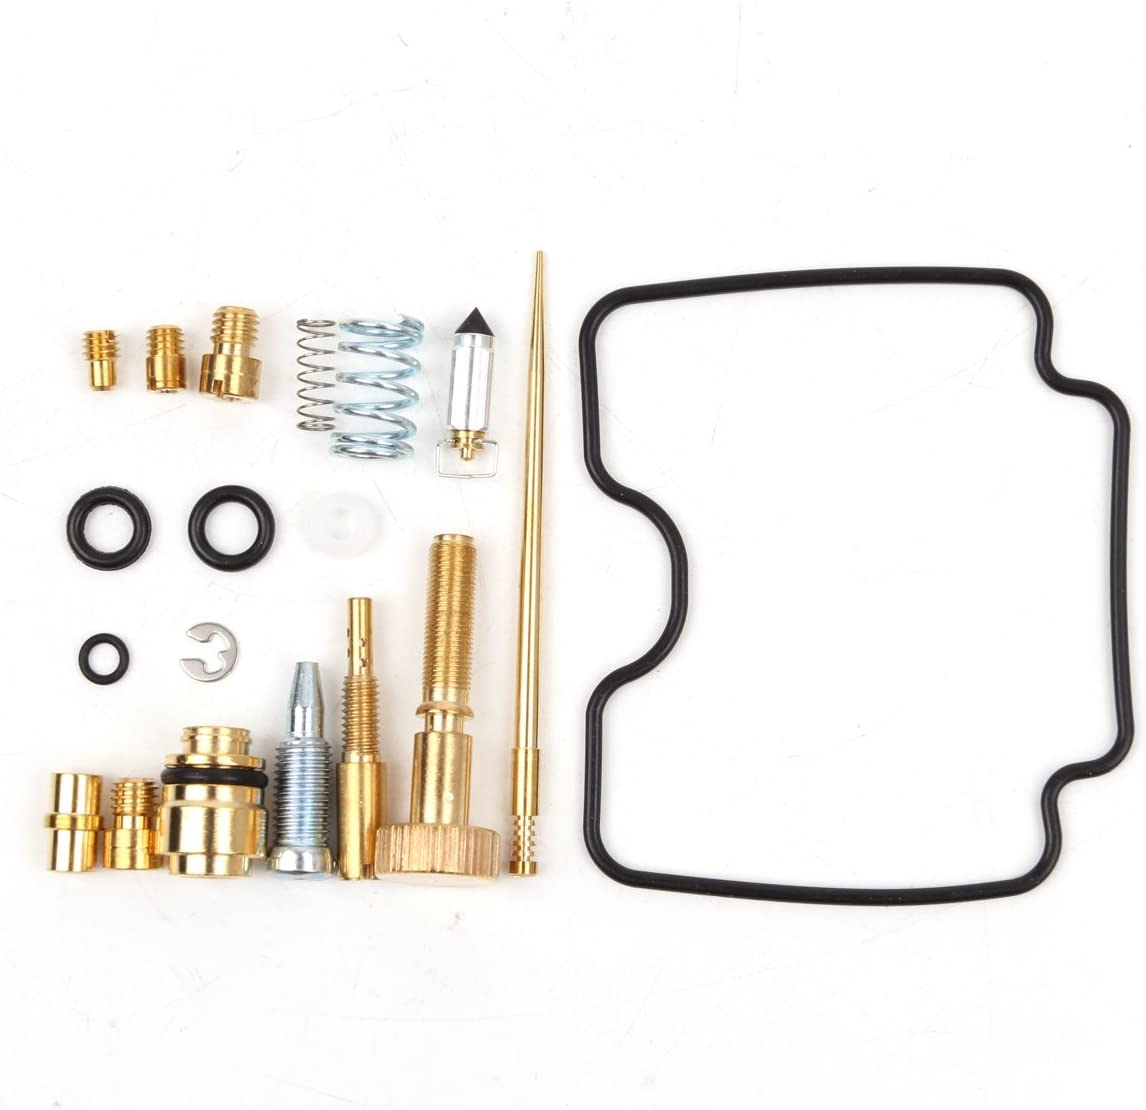 Carb Rebuild Kit Repair 2003-2007 Polaris Predator 500 /& 2006-2007 Outlaw 500